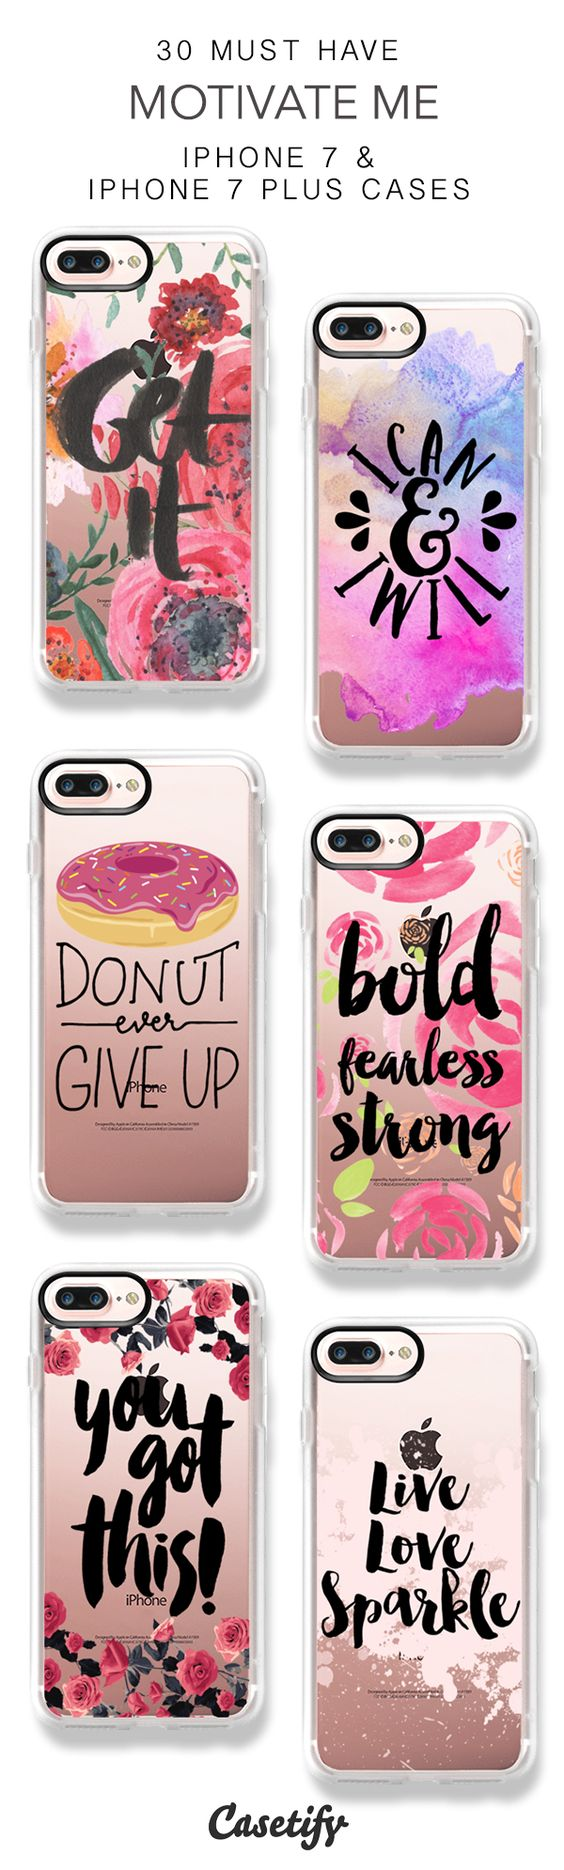 30 Must Have Motivate Me iPhone 7 Cases and iPhone 7 Plus Cases. More Quotes iPhone case here > https://www.casetify.com/collections/top_100_designs#/?vc=YnrFZGO9vo: